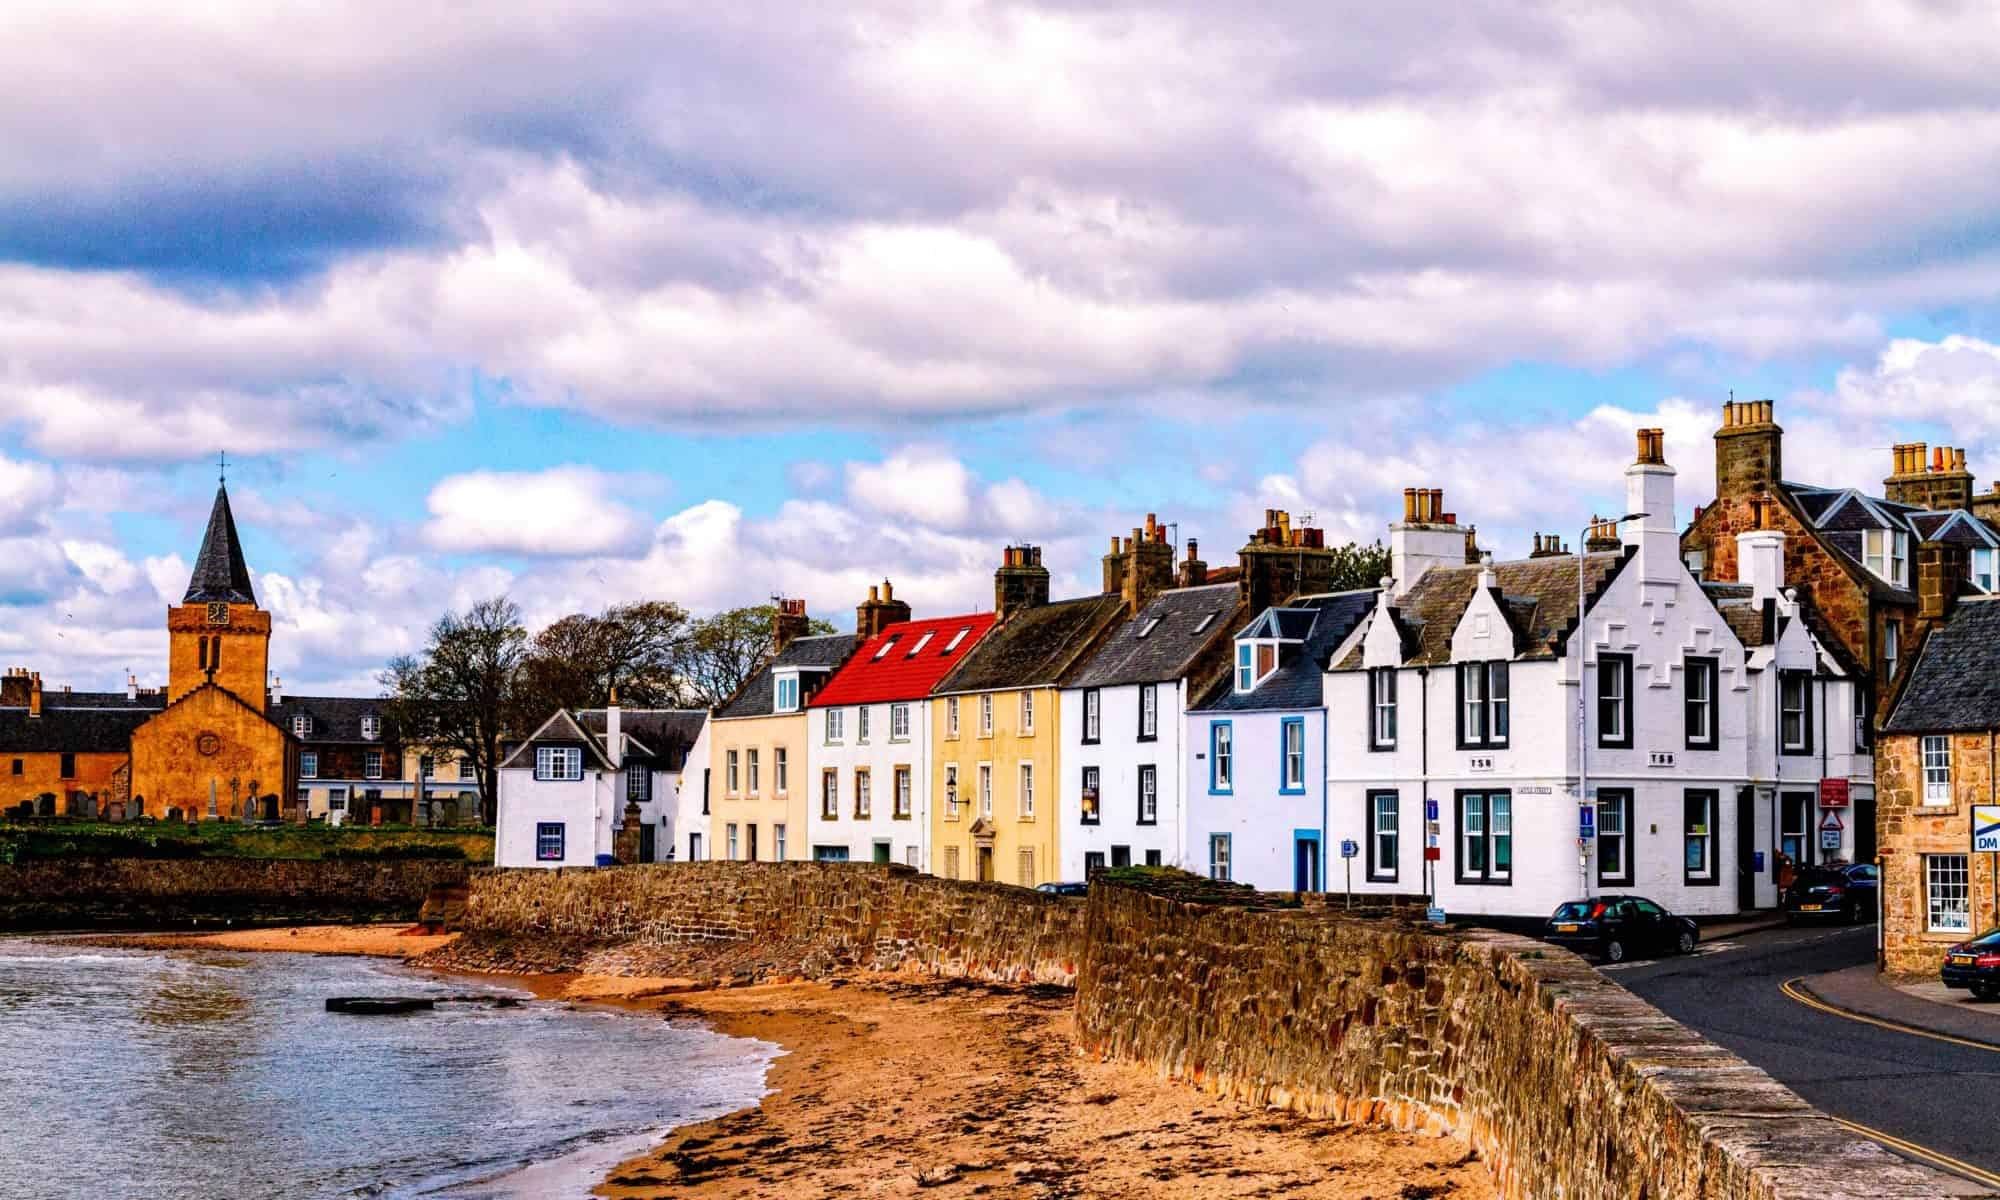 Town in Scotland